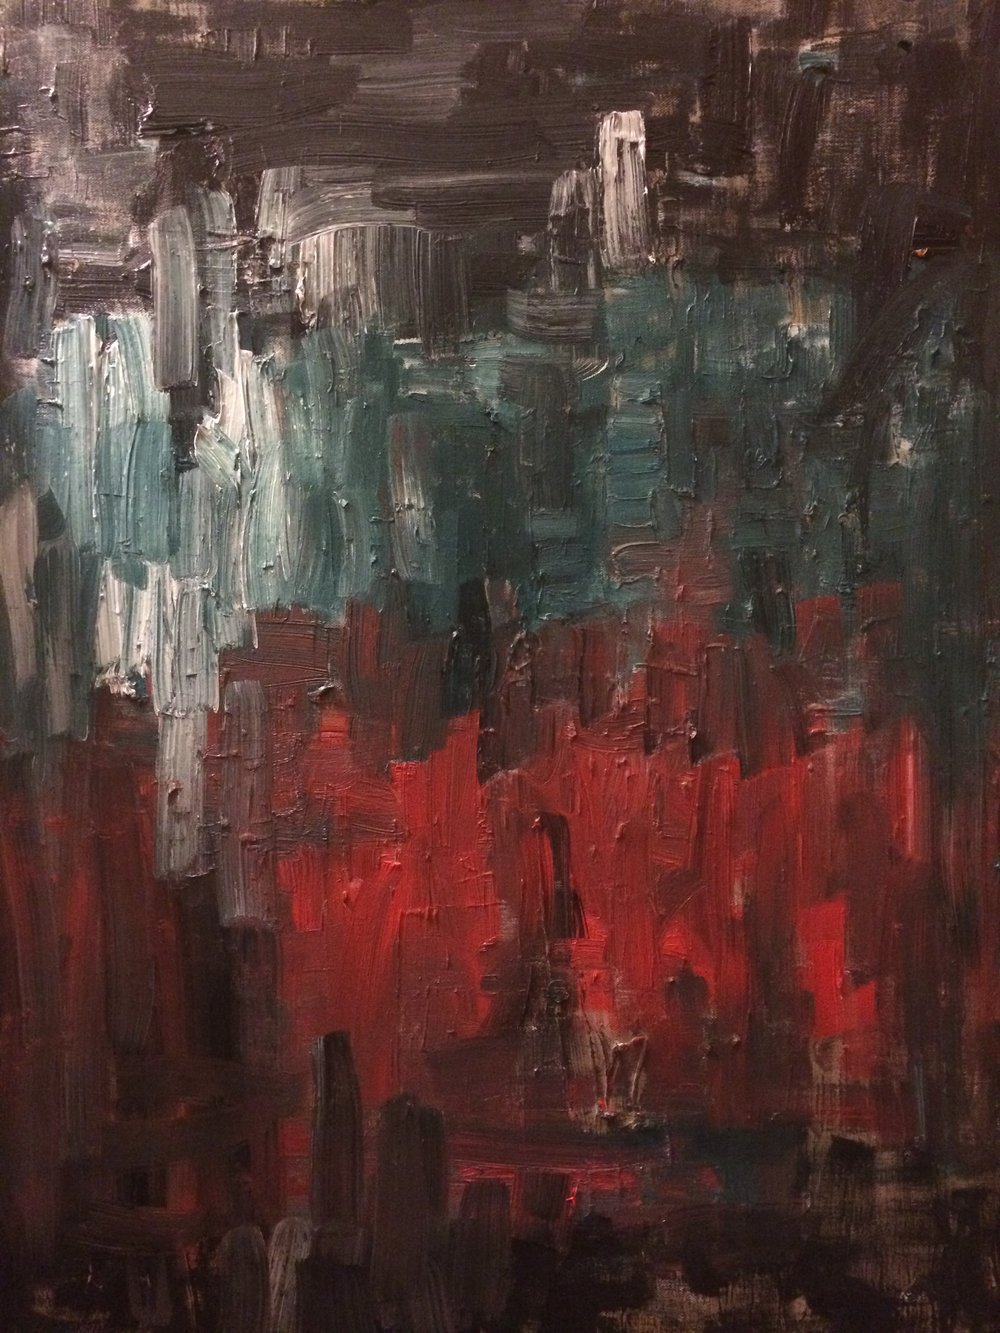 Untitled Red and Blue Painting